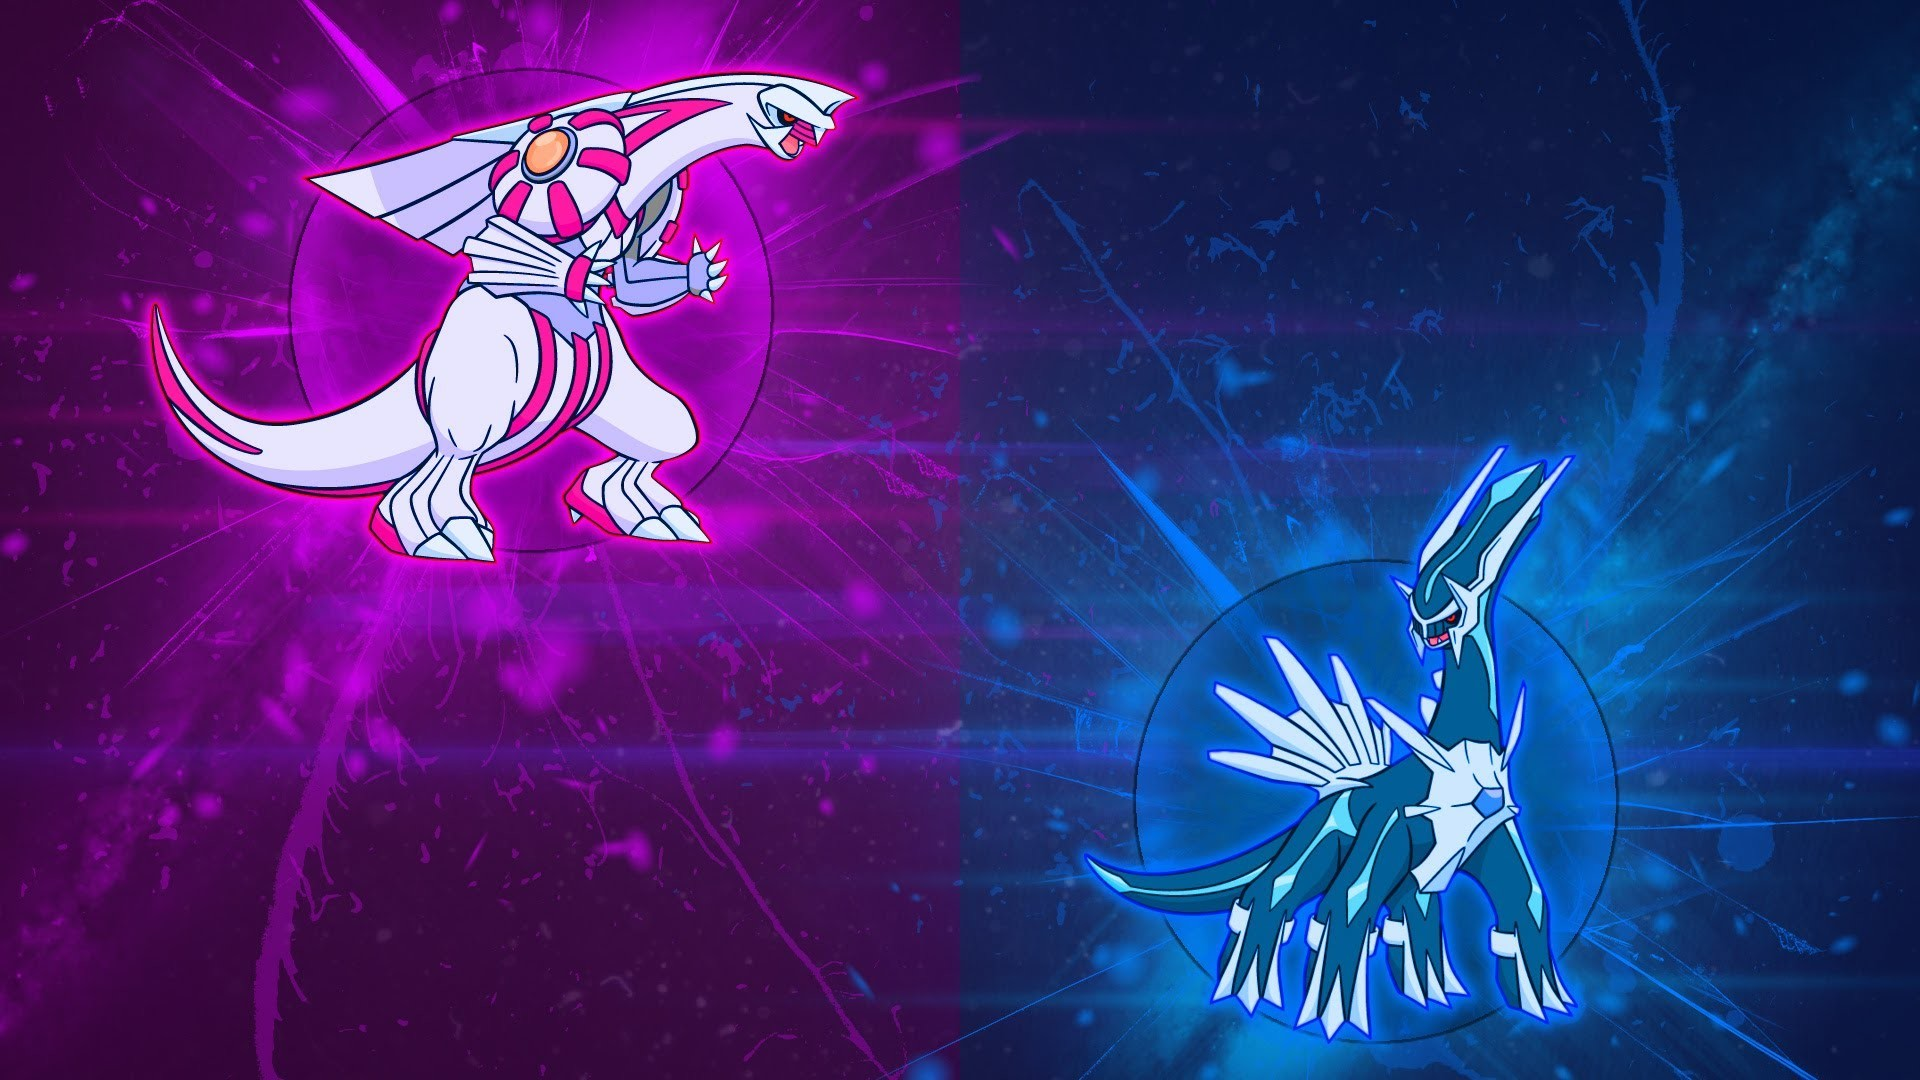 Res: 1920x1080, Speedart: Dialga & Palkia Wallpaper - TB24Lps - YouTube